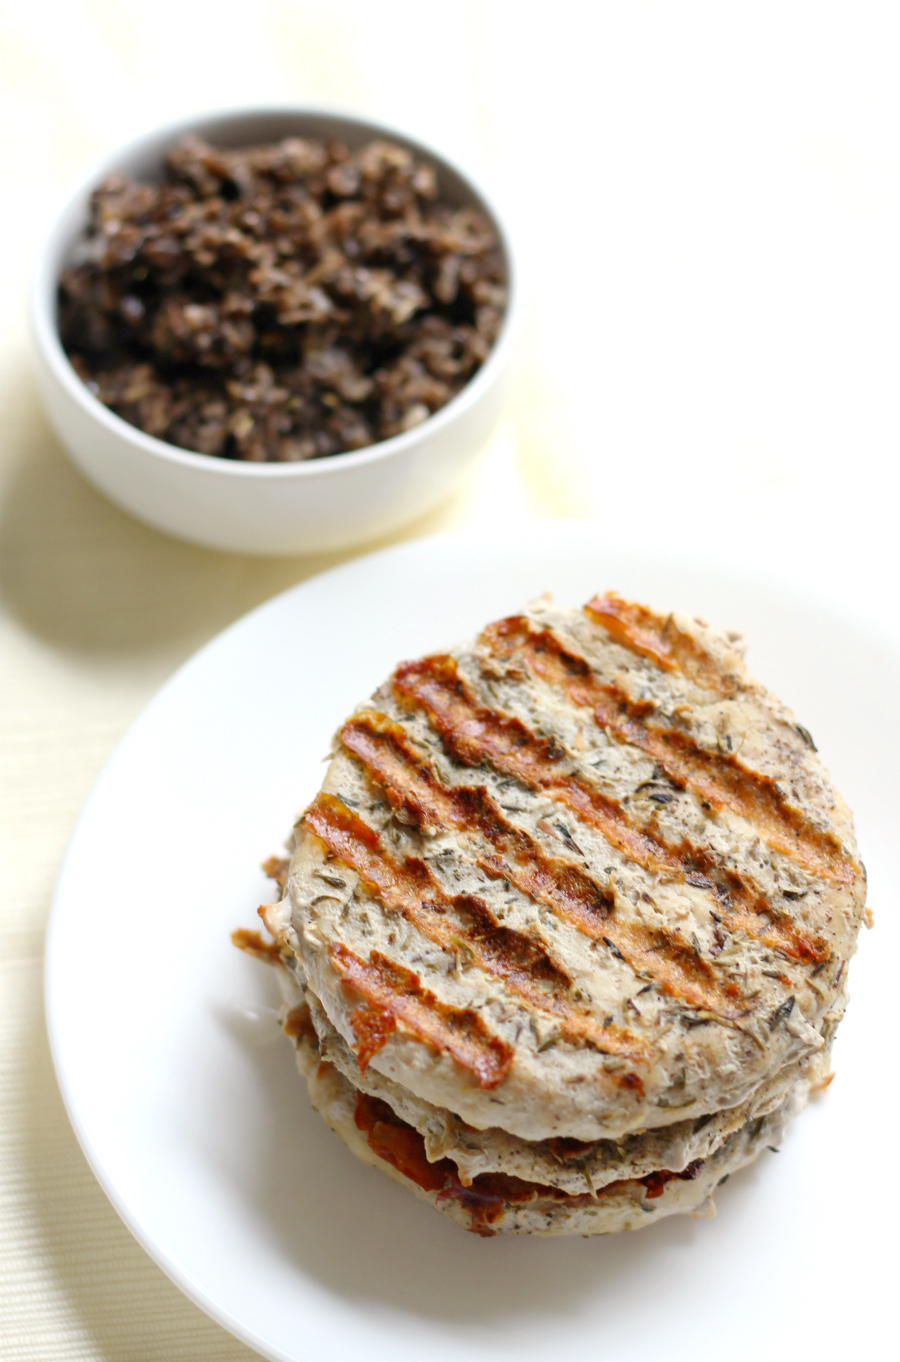 Grilled Chicken Burgers with Black Olive Tapenade (Gluten-Free, Paleo) | Strength and Sunshine @RebeccaGF666 Quick and easy Grilled Chicken Burgers with Black Olive Tapenade that are gluten-free, paleo, and allergy-free! Classic herb flavors with a salty bite from the homemade tapenade will make for a stand out healthy summer dinner recipe!